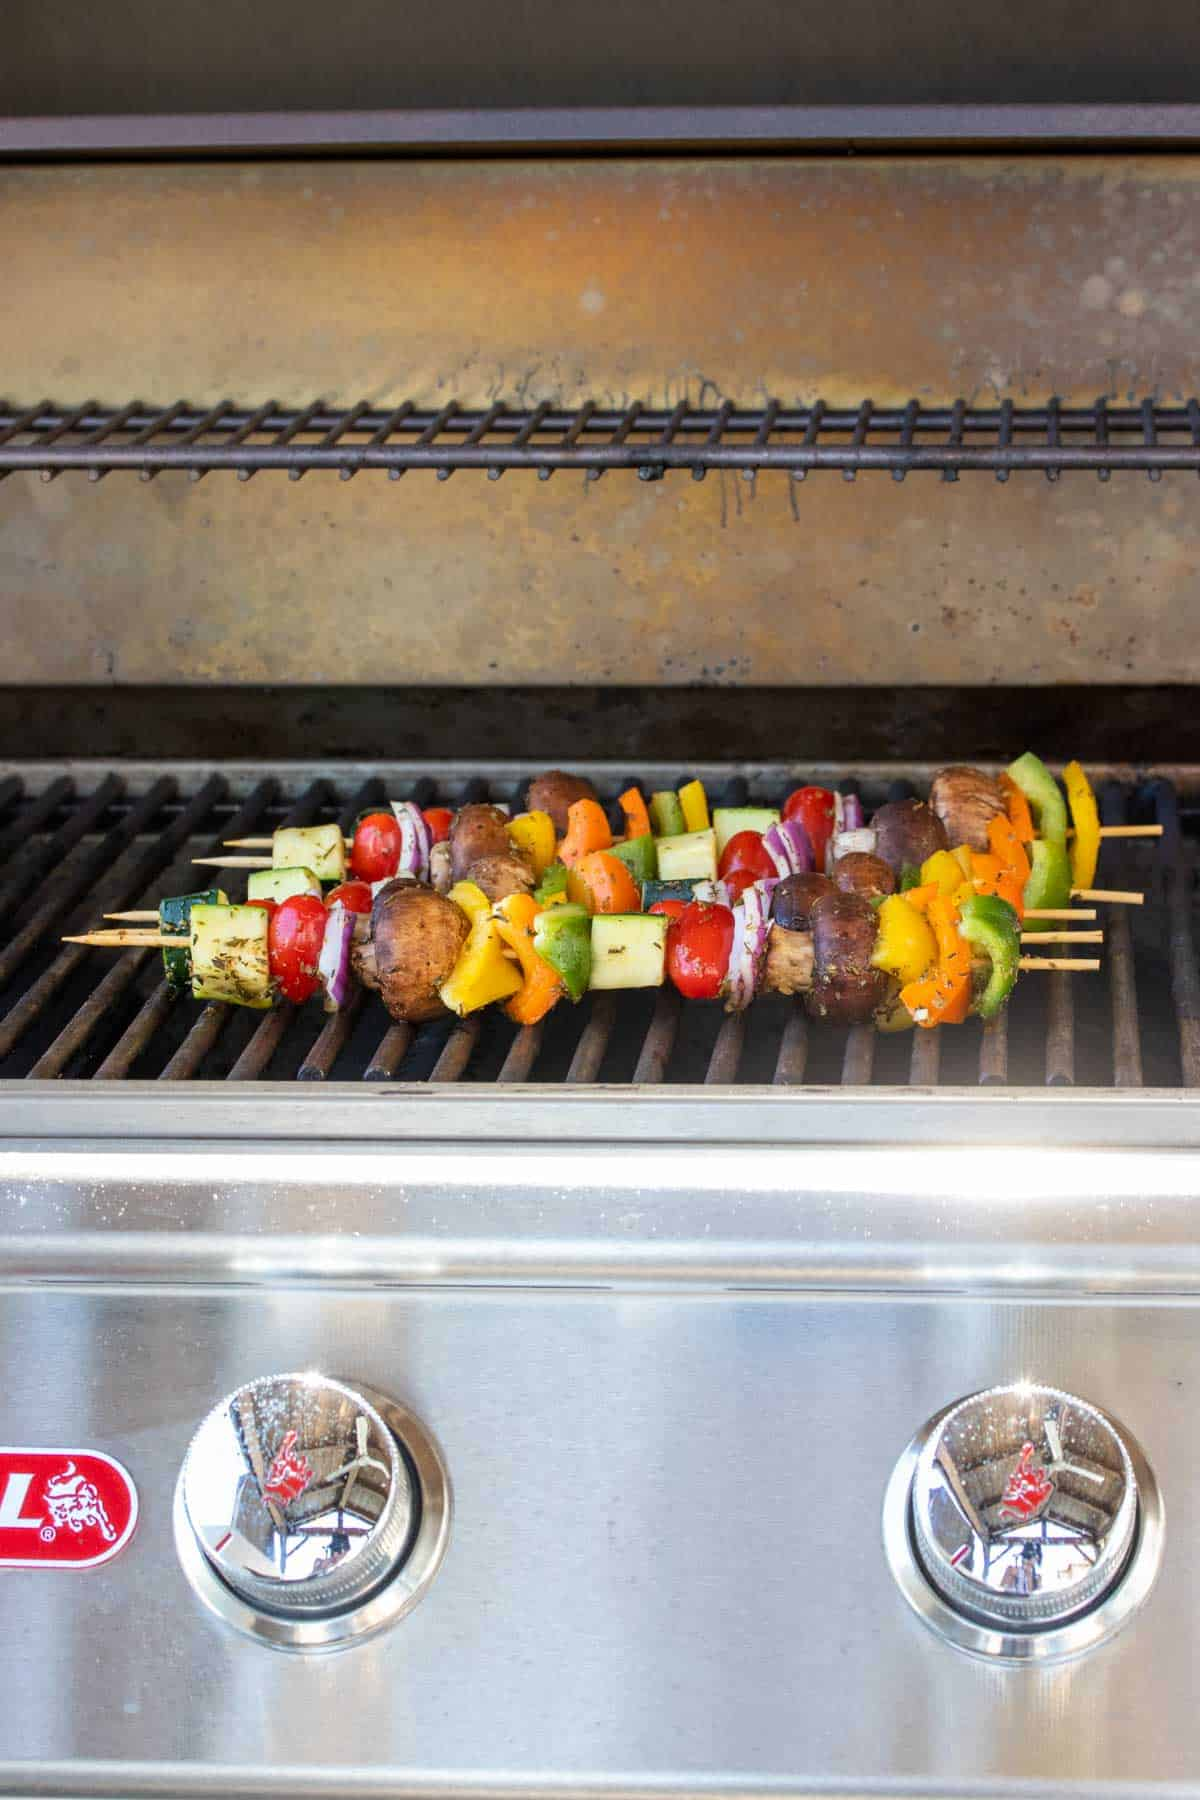 Veggie kabobs being grilled on an outdoor grill